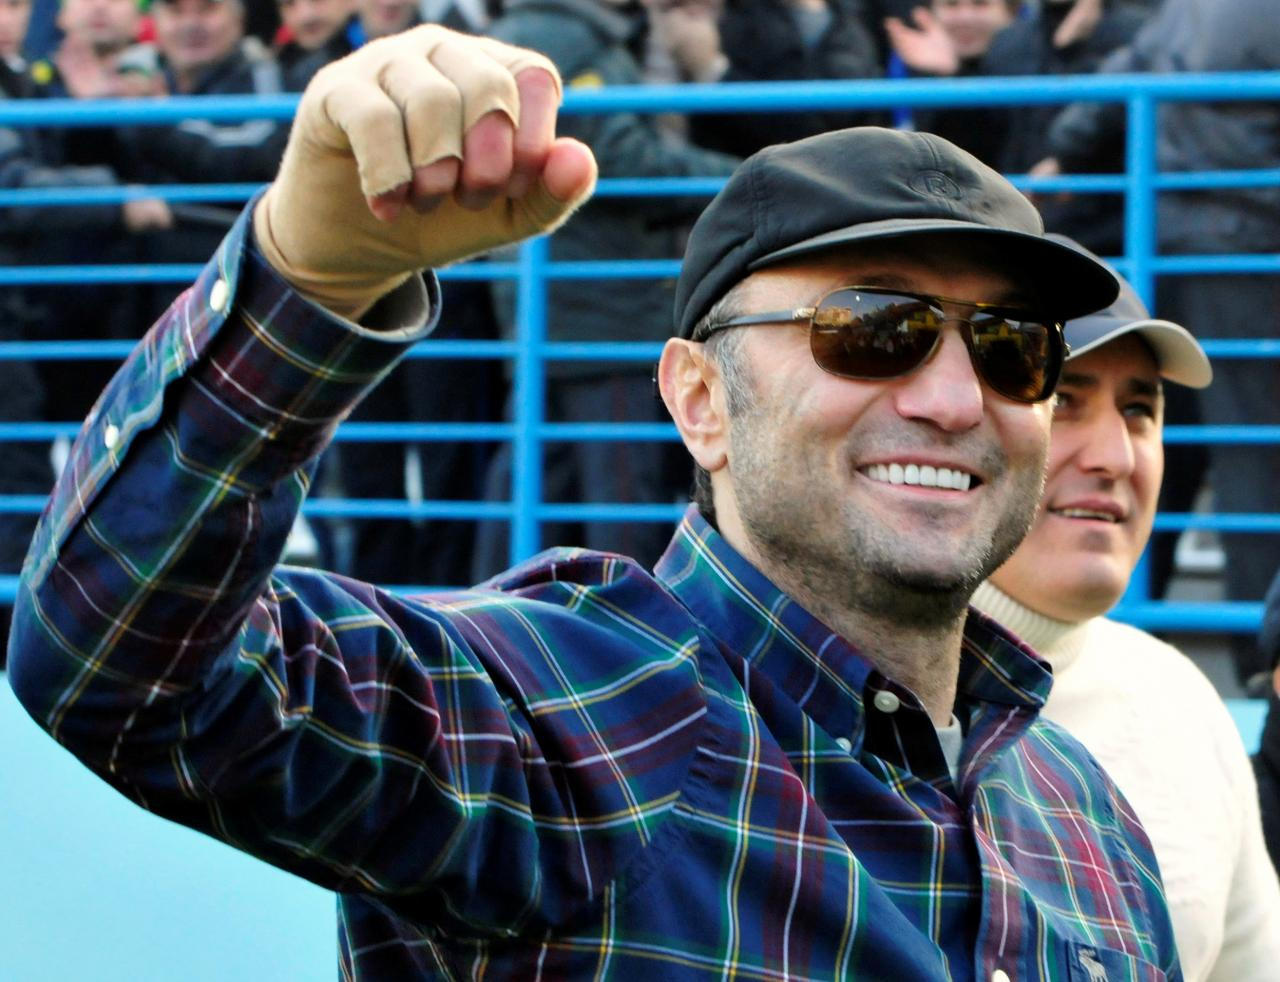 FILE PHOTO: Dagestani born tycoon Suleiman Kerimov watches a soccer match between Anzhi and CSKA in Makhachkala, Russia December 2, 2012. REUTERS/Sergei Rasulov/NewsTeam/File Photo